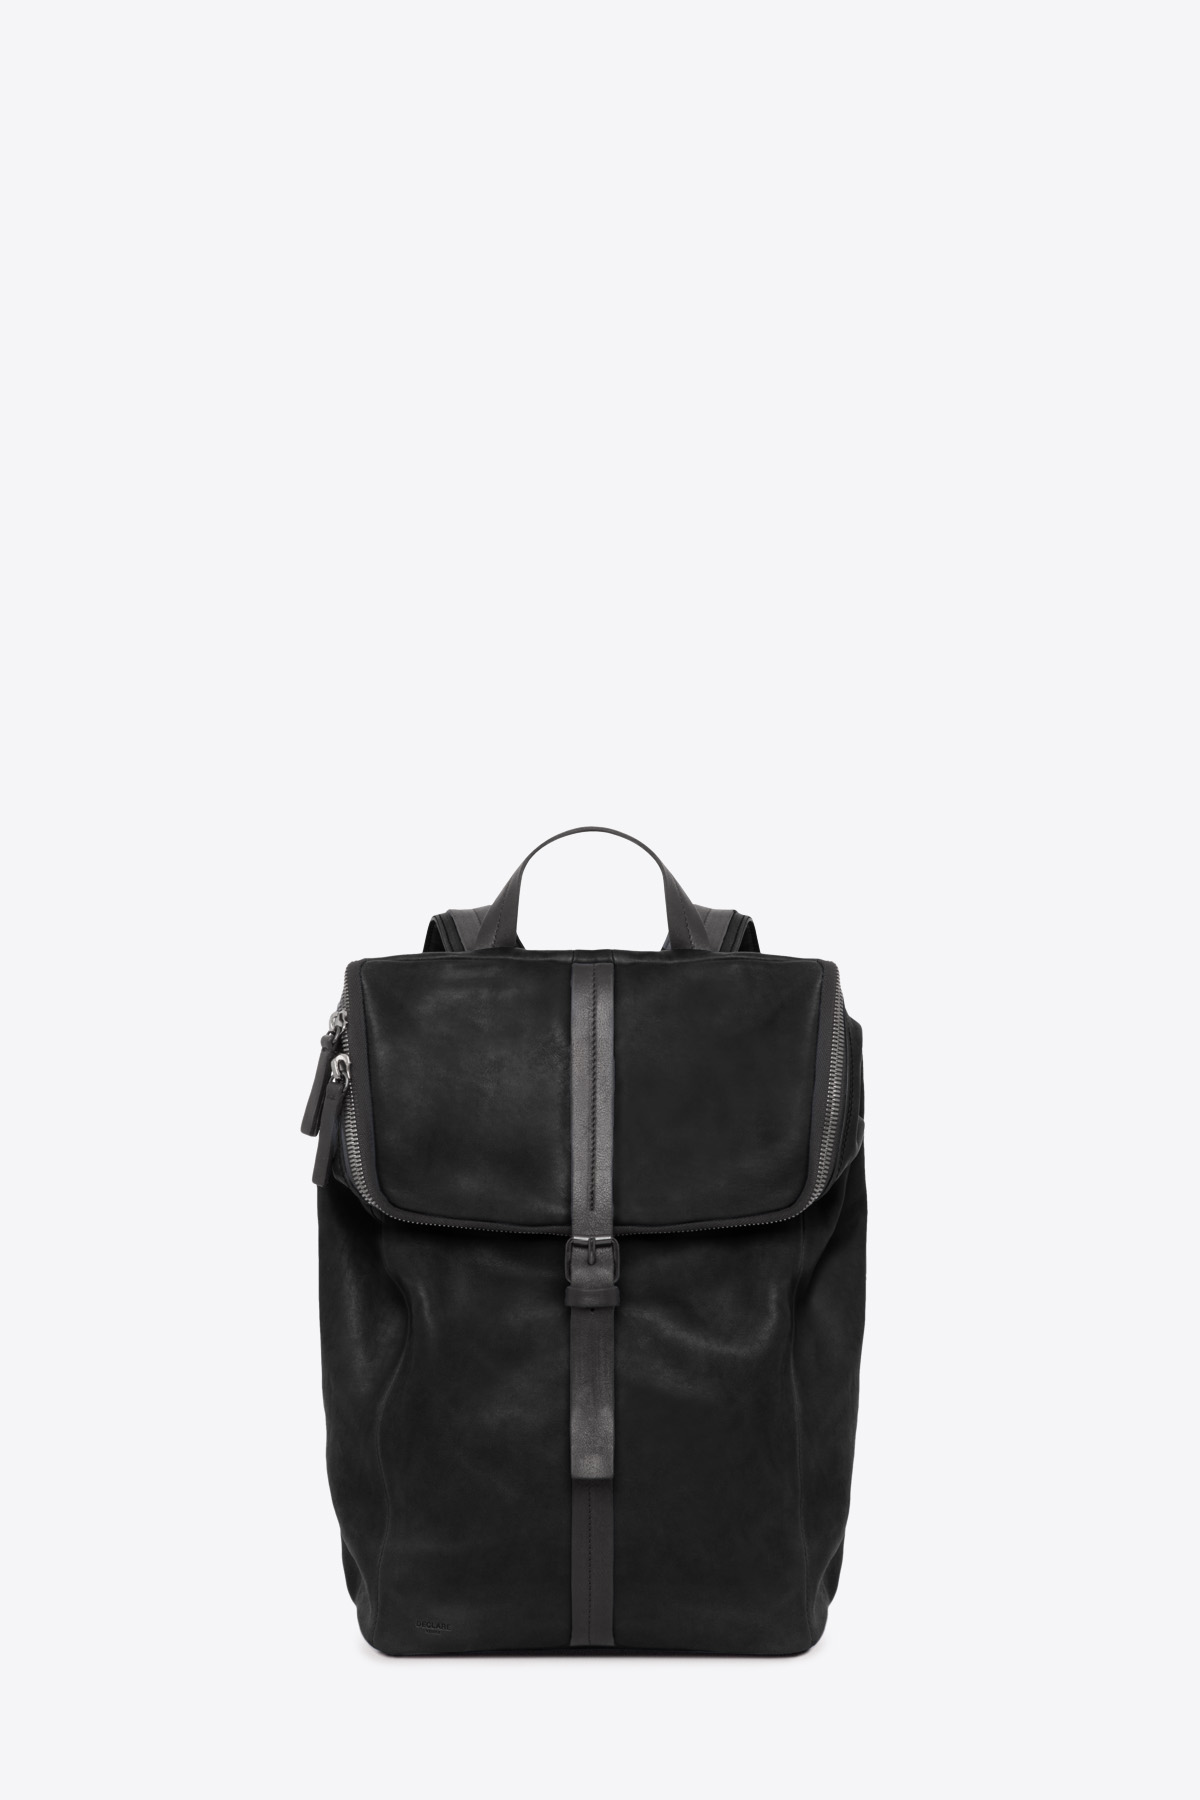 dclr011-backpack-a1-black-front